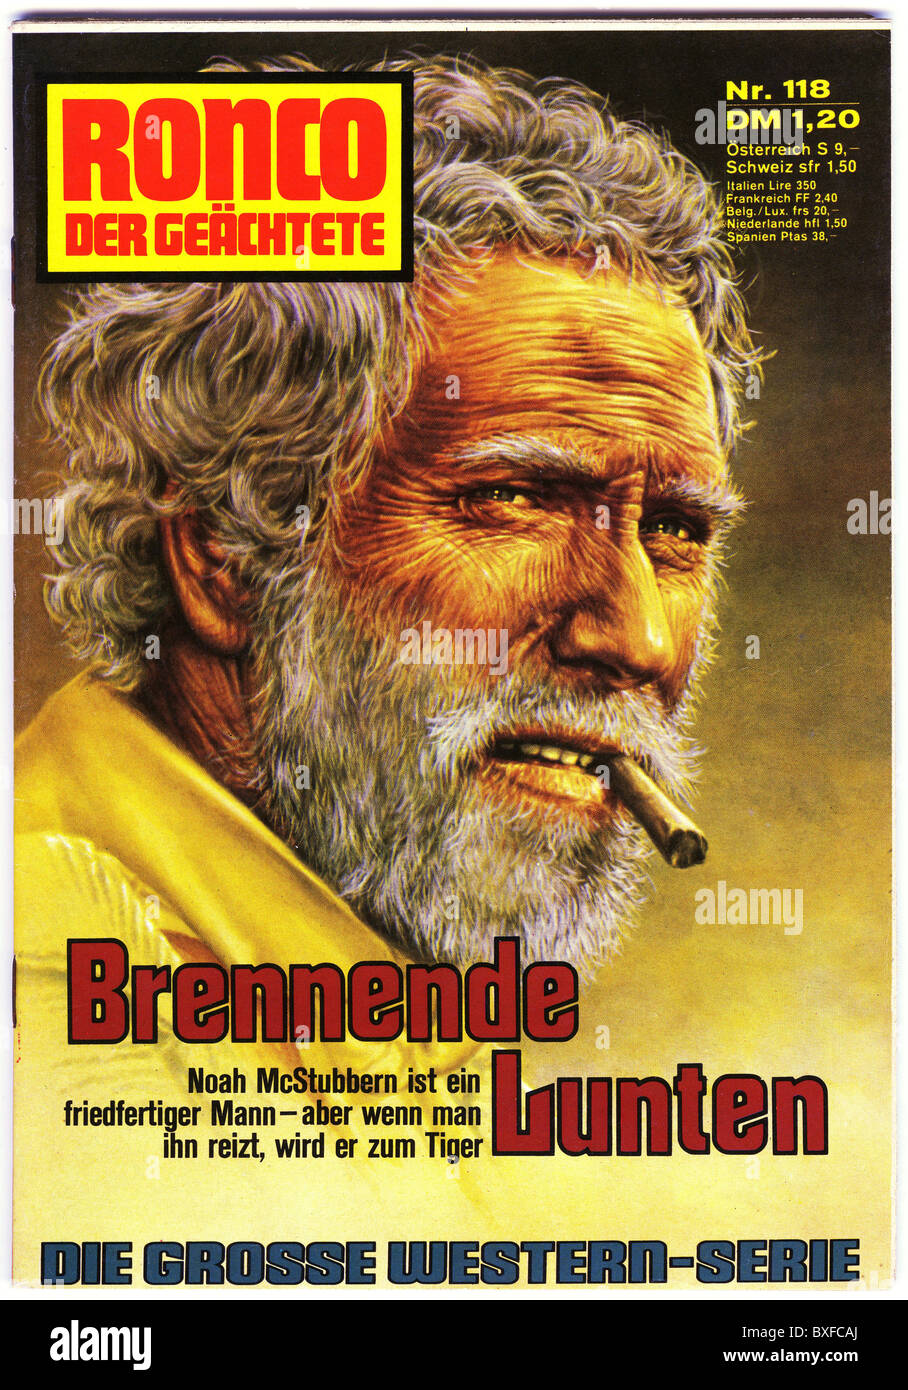 books, magazines / newspapers, penny novel, Ronco, der